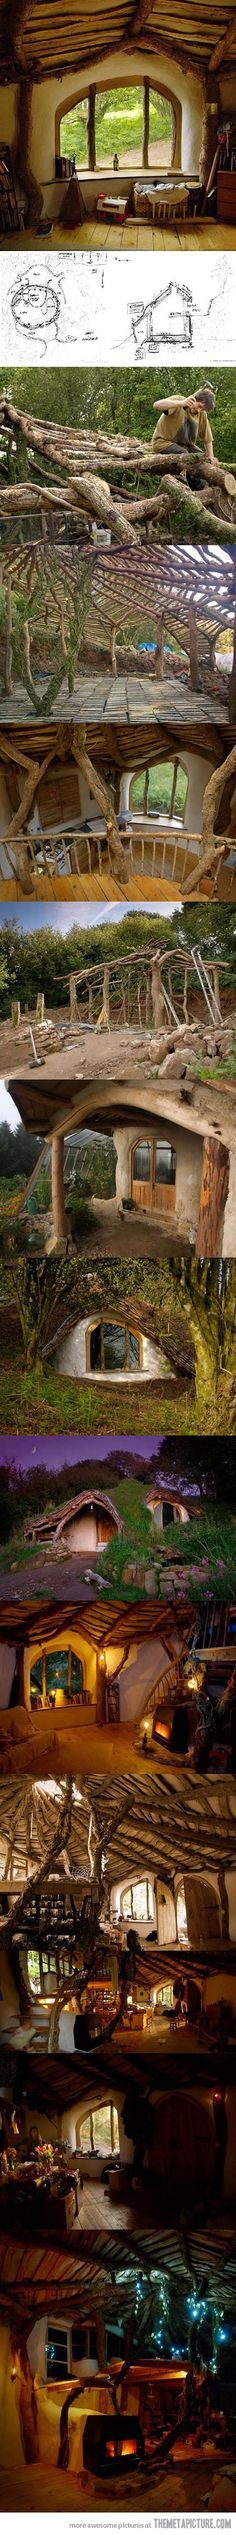 How to build a Hobbit house :)